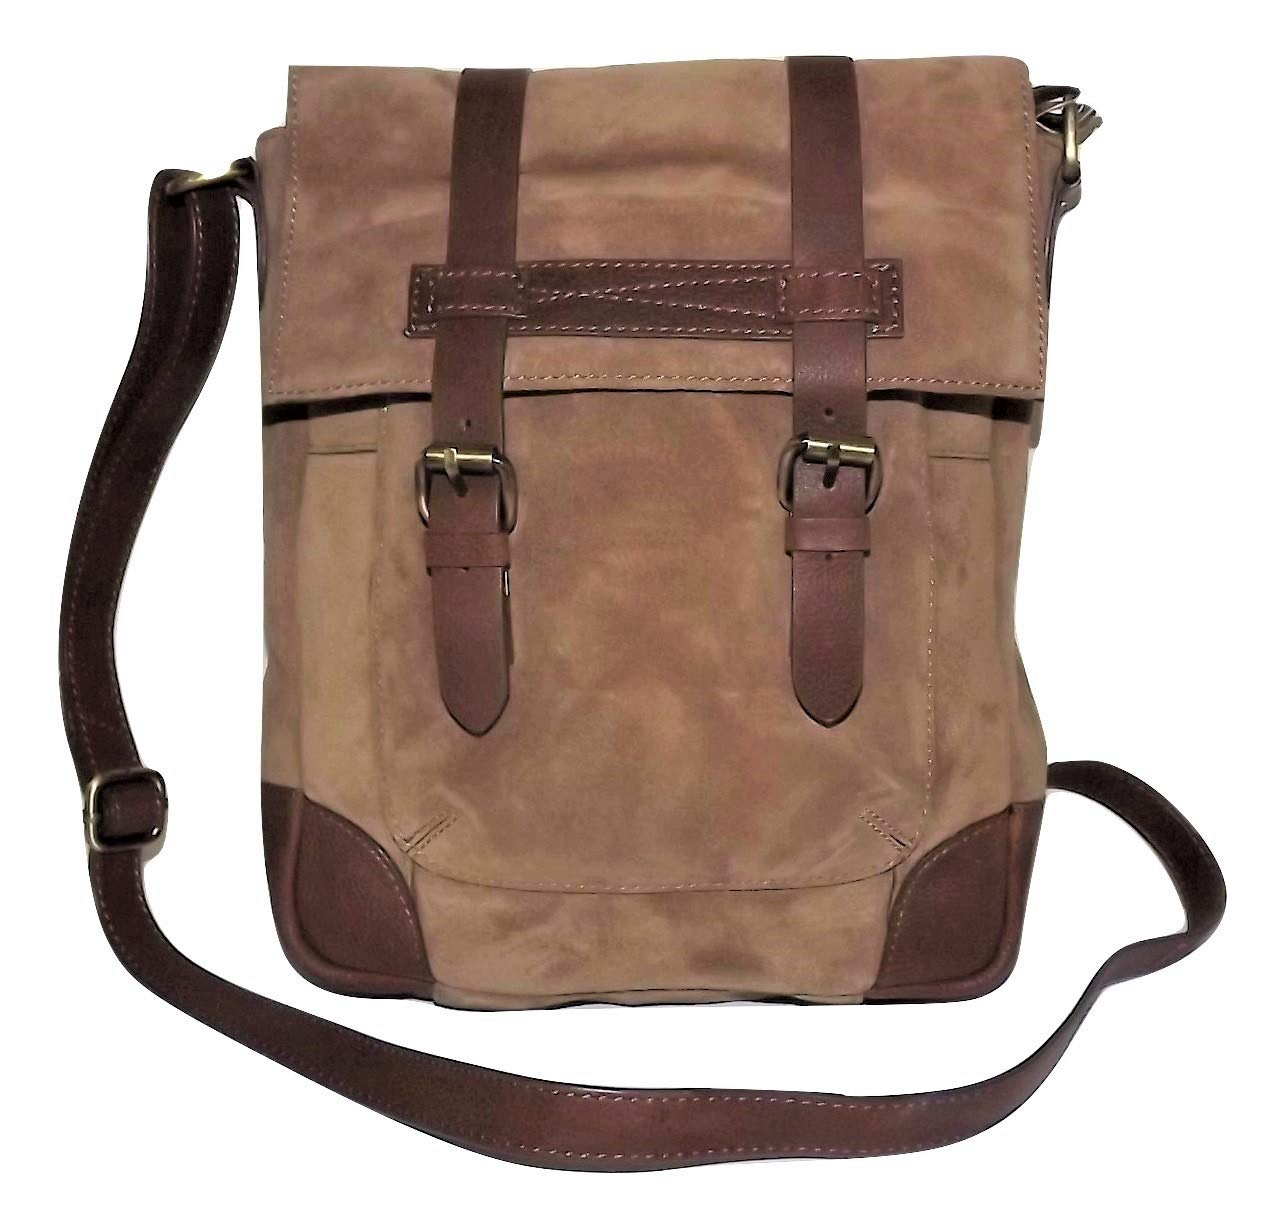 Scully Retro Nubuck Leather Cargo Messenger Tablet Crossbody Bag Tan//Brown